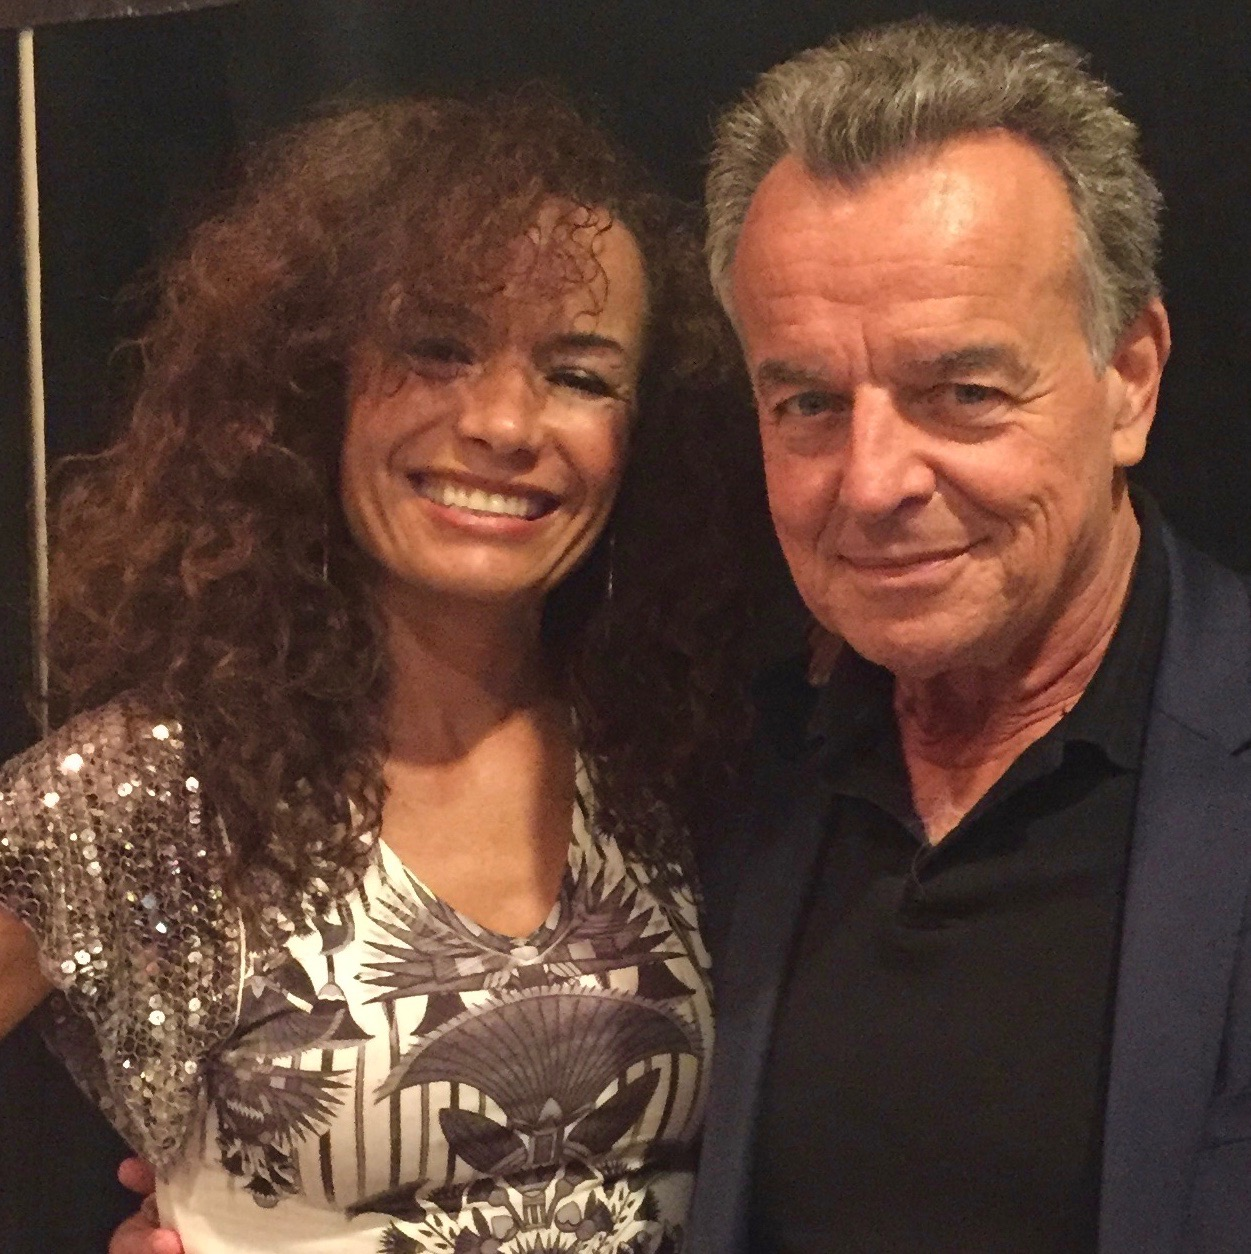 With the talented Ray Wise